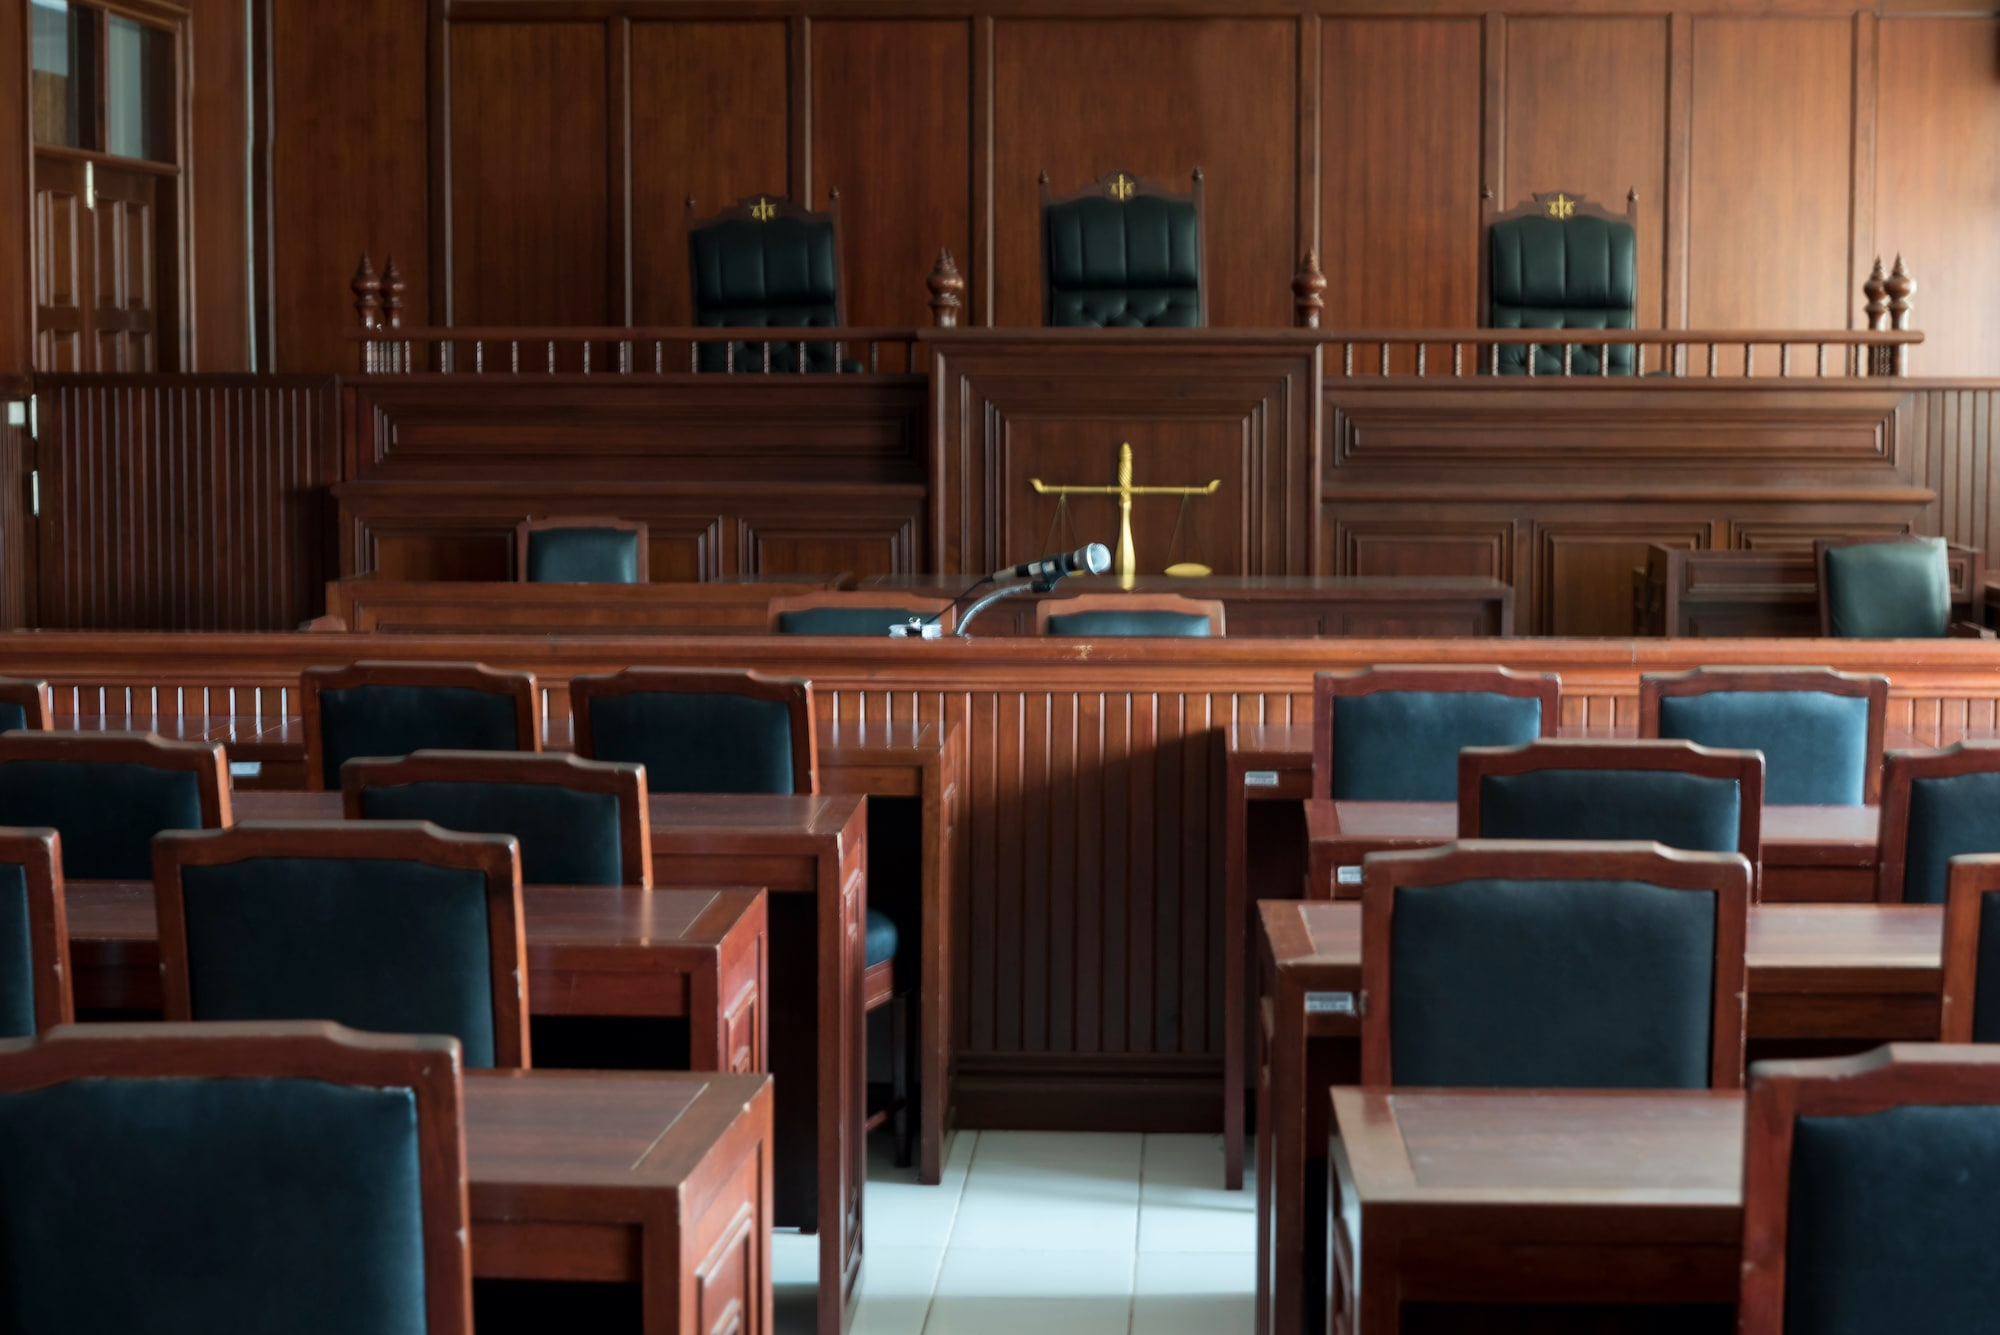 expert witness for a legal case